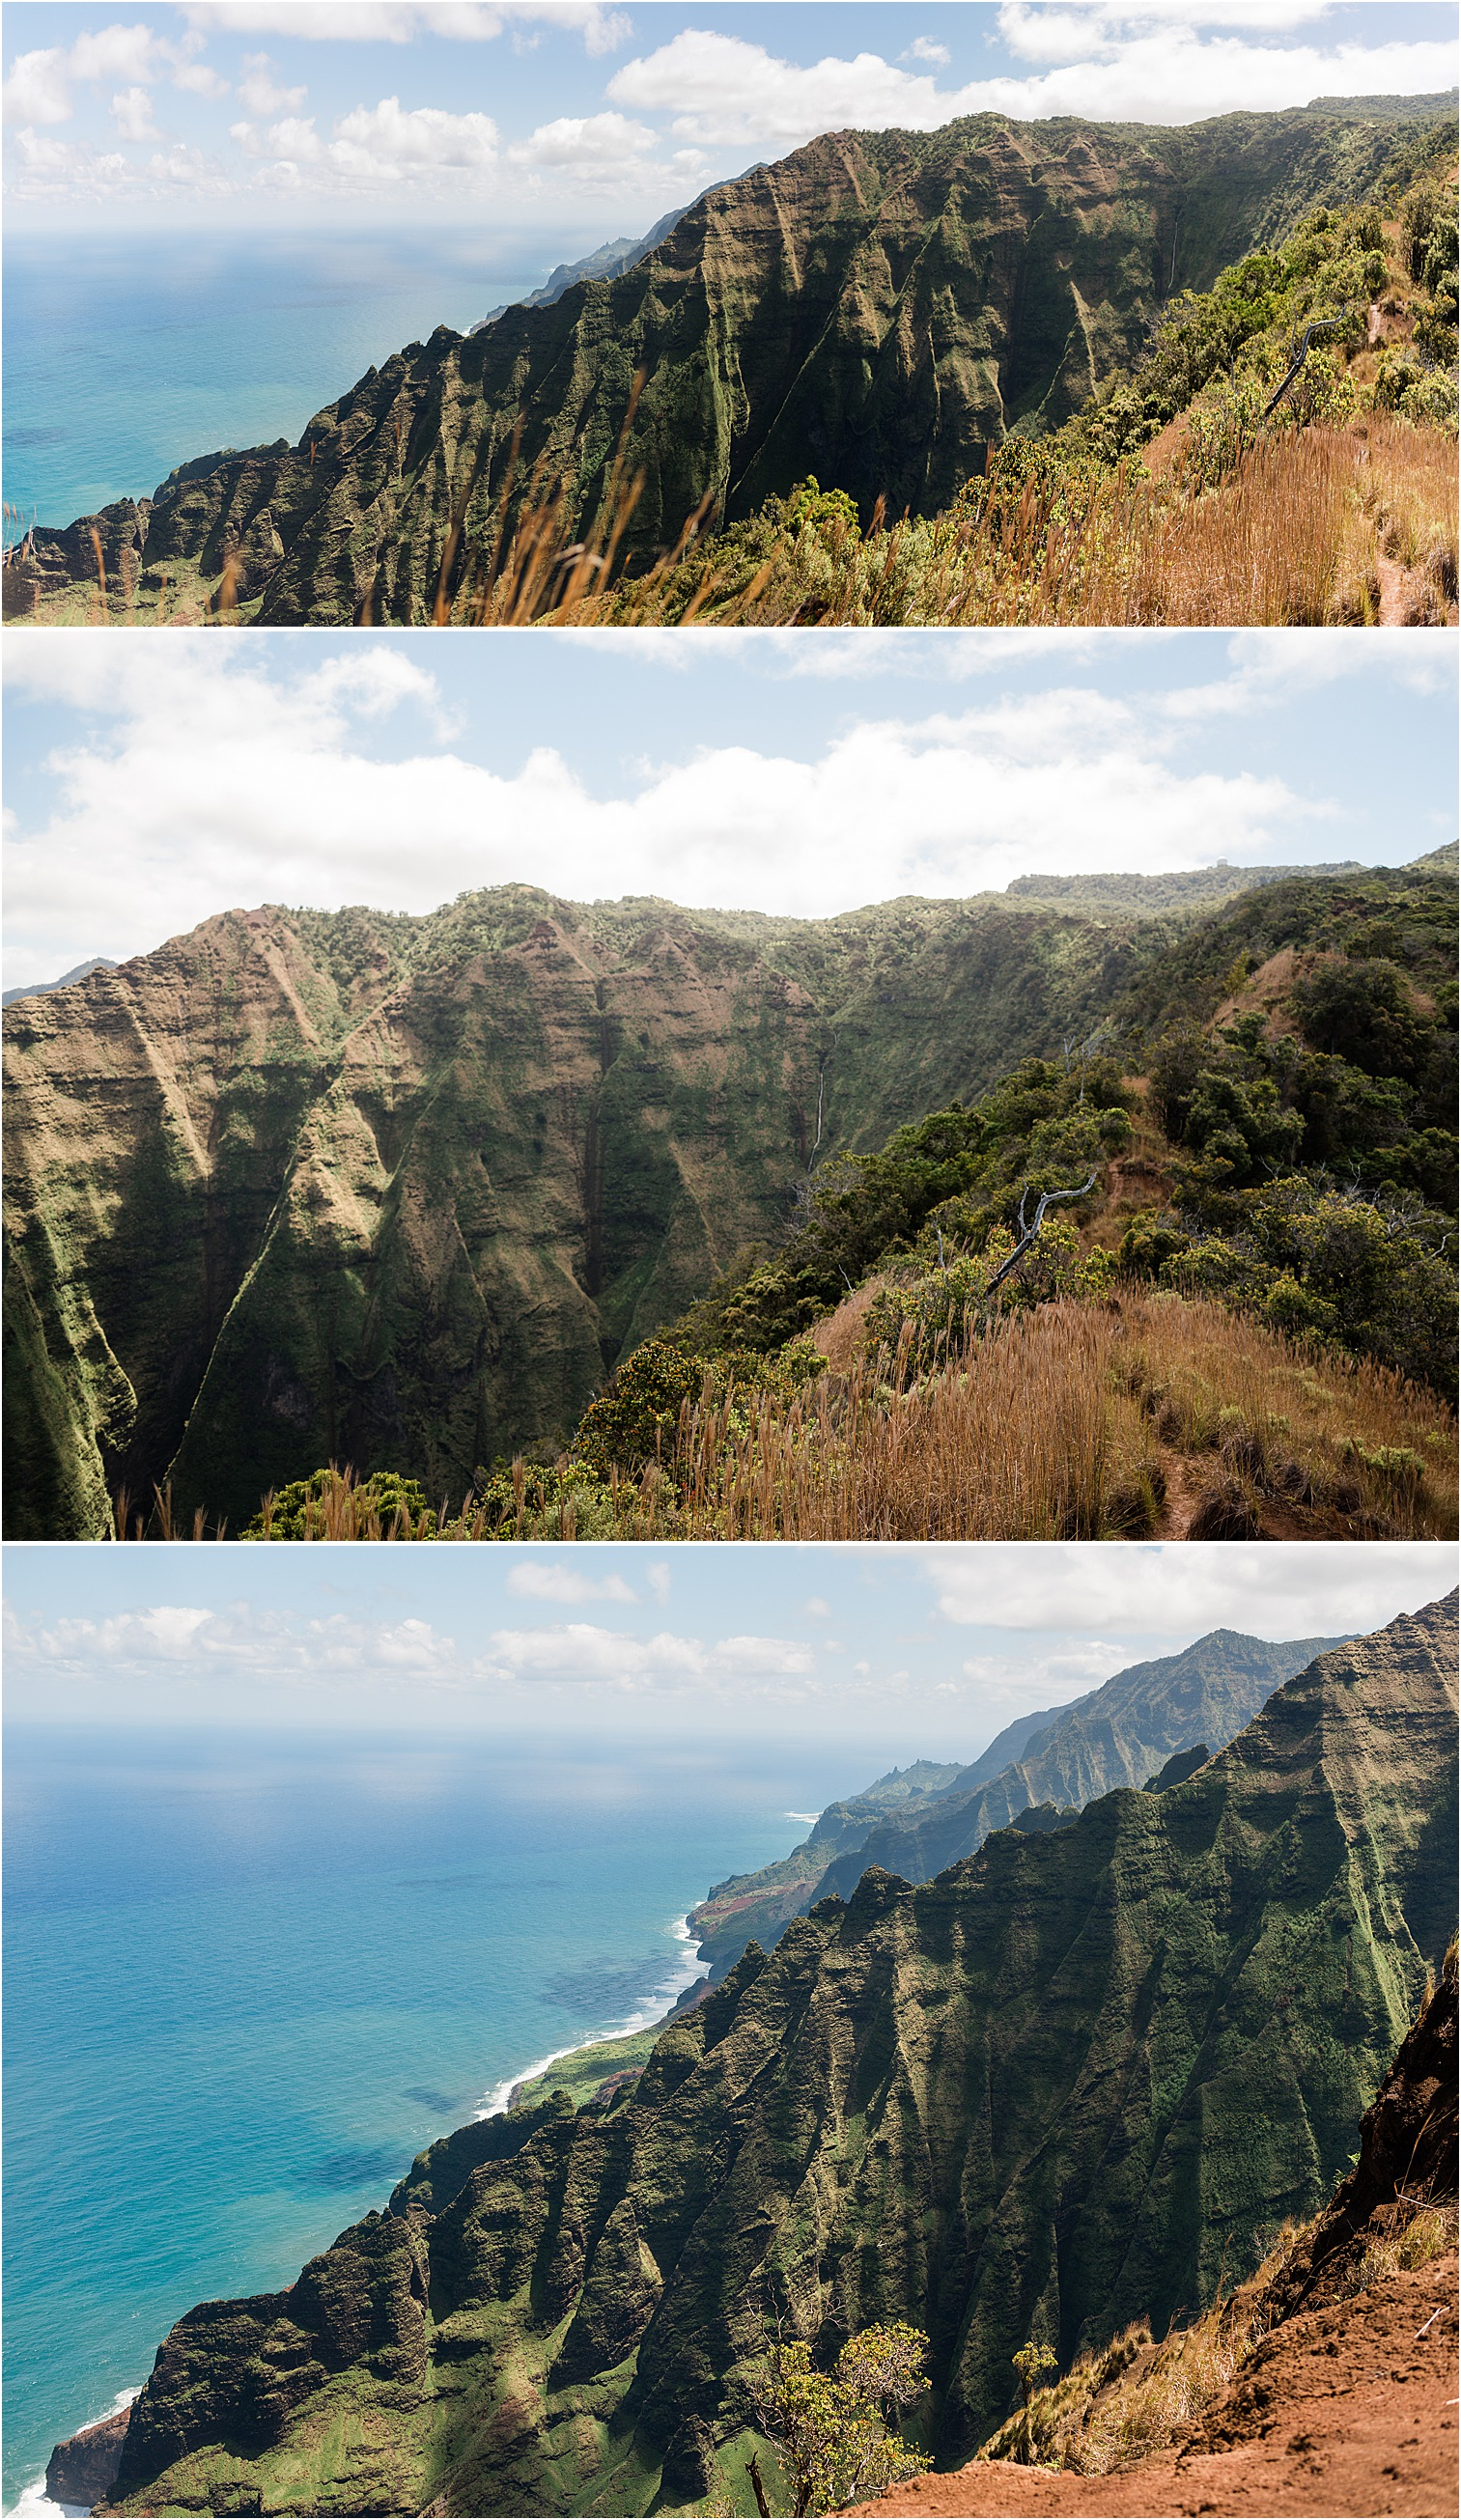 Views from the top of Honopu Ridge. Image by Forthright Photo, Kauai Adventure Wedding Photographers